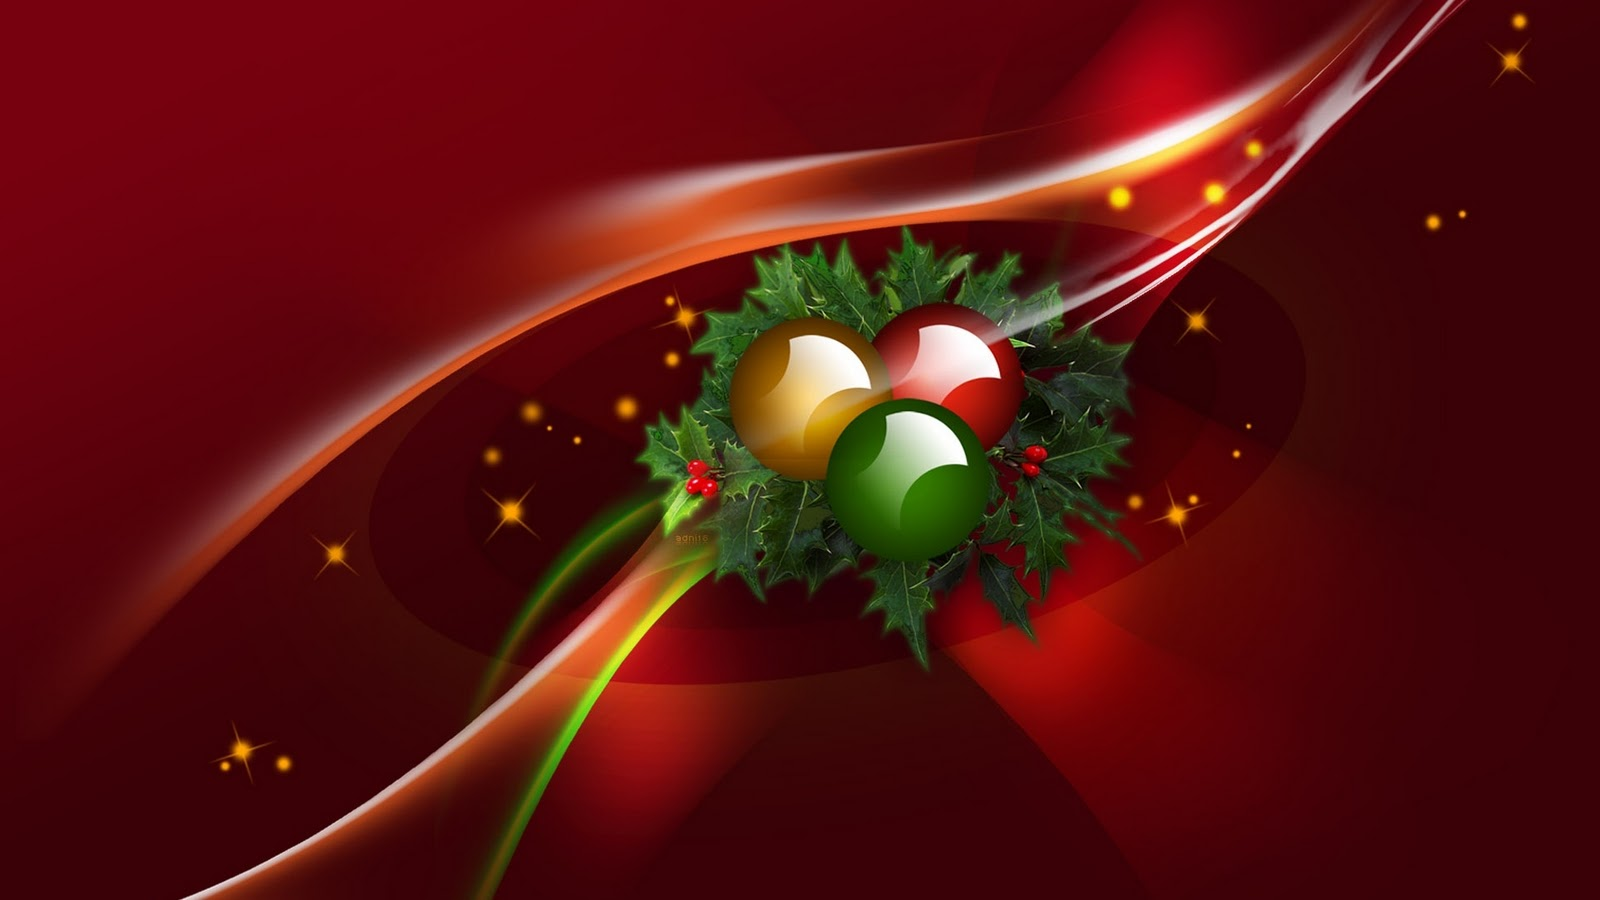 Merry Christmas & Happy New Year 2015 Full HD Wallpapers